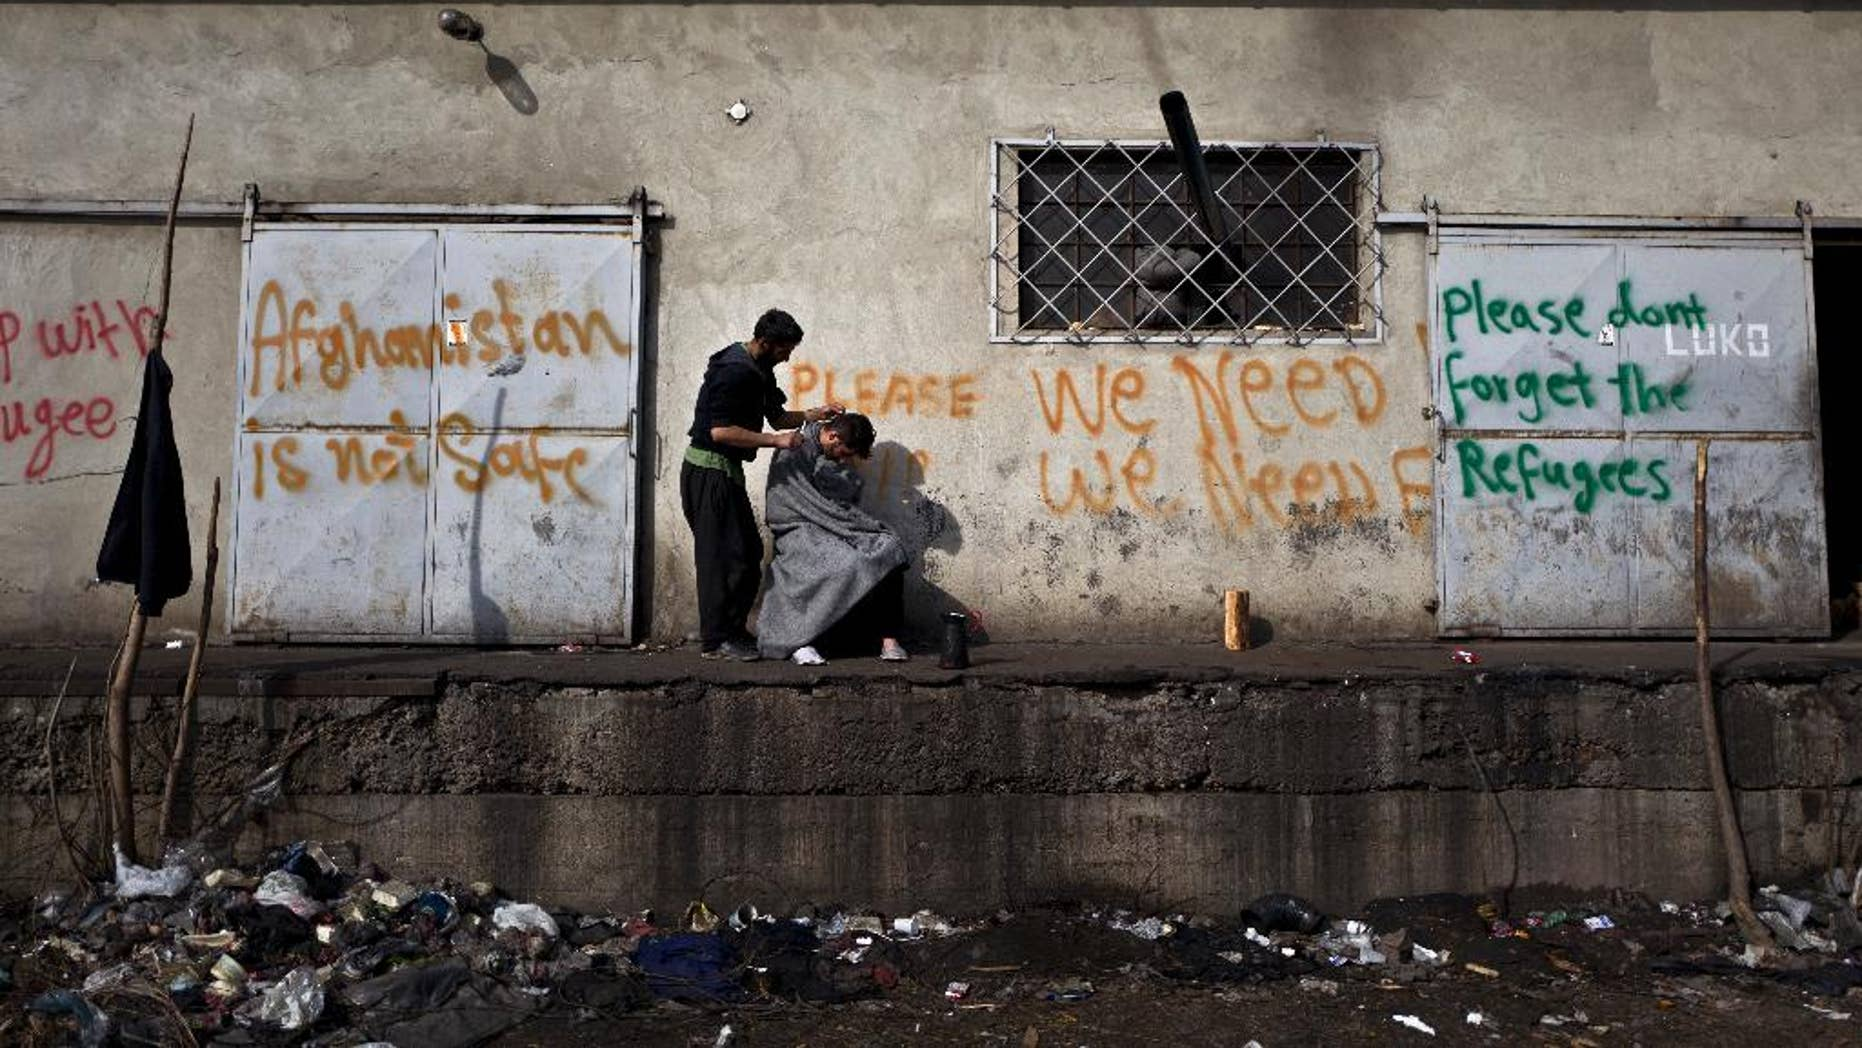 An Afghan refugee man gives a haircut to a friend in an abandoned warehouse where they have taken refuge in Belgrade, Serbia, Wednesday, Feb. 22, 2017. Hundreds of migrants have been sleeping rough in freezing conditions in central Belgrade looking for ways to cross the heavily guarded EU borders. (AP Photo/Muhammed Muheisen)